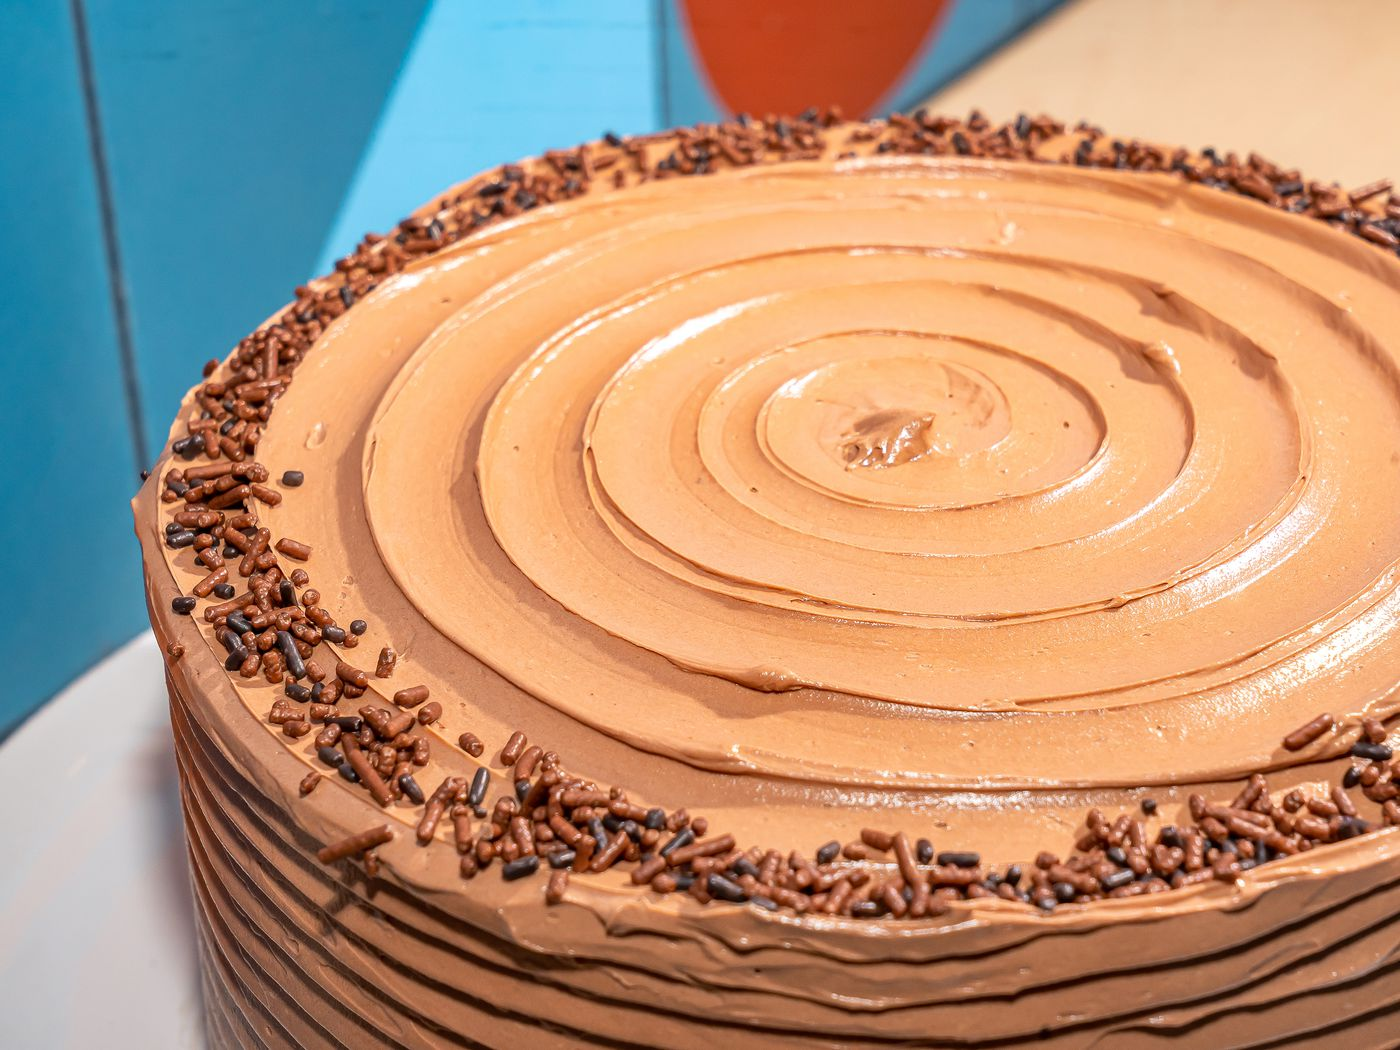 Nyc Dessert Delivery Cake Cookie And Pastry Shops Open During Coronavirus Eater Ny